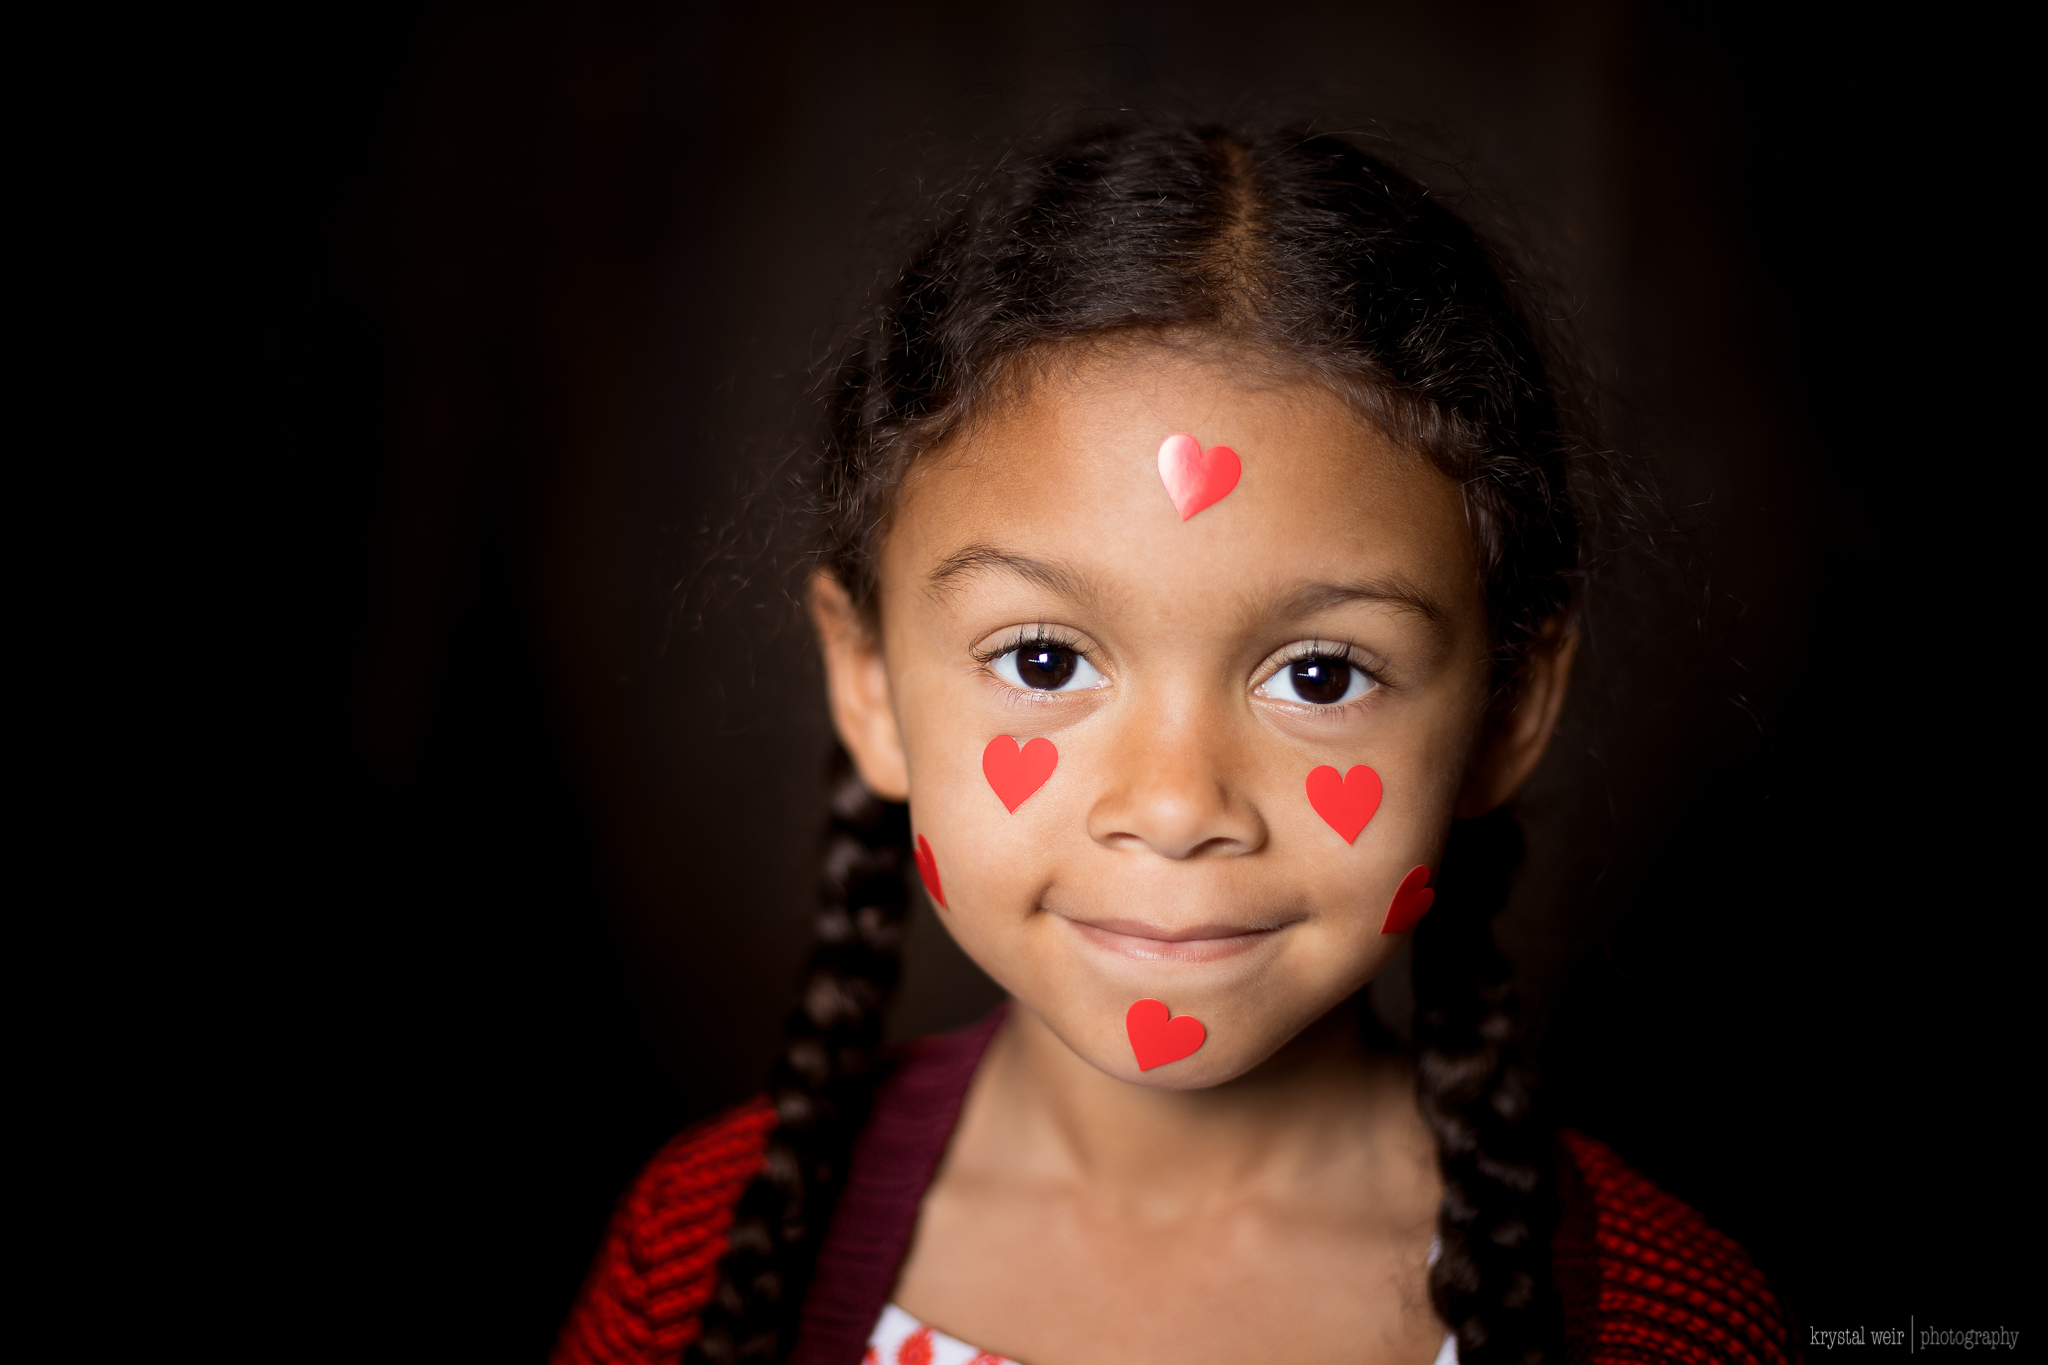 Day 45/365 One more Valentine's Day share before the night is over! She's such a good sport most of the time 😍😂❤️  A little Valentines Day fun! I used my usual setup, one speed light and 24x24in softbox, about 4 ft away.